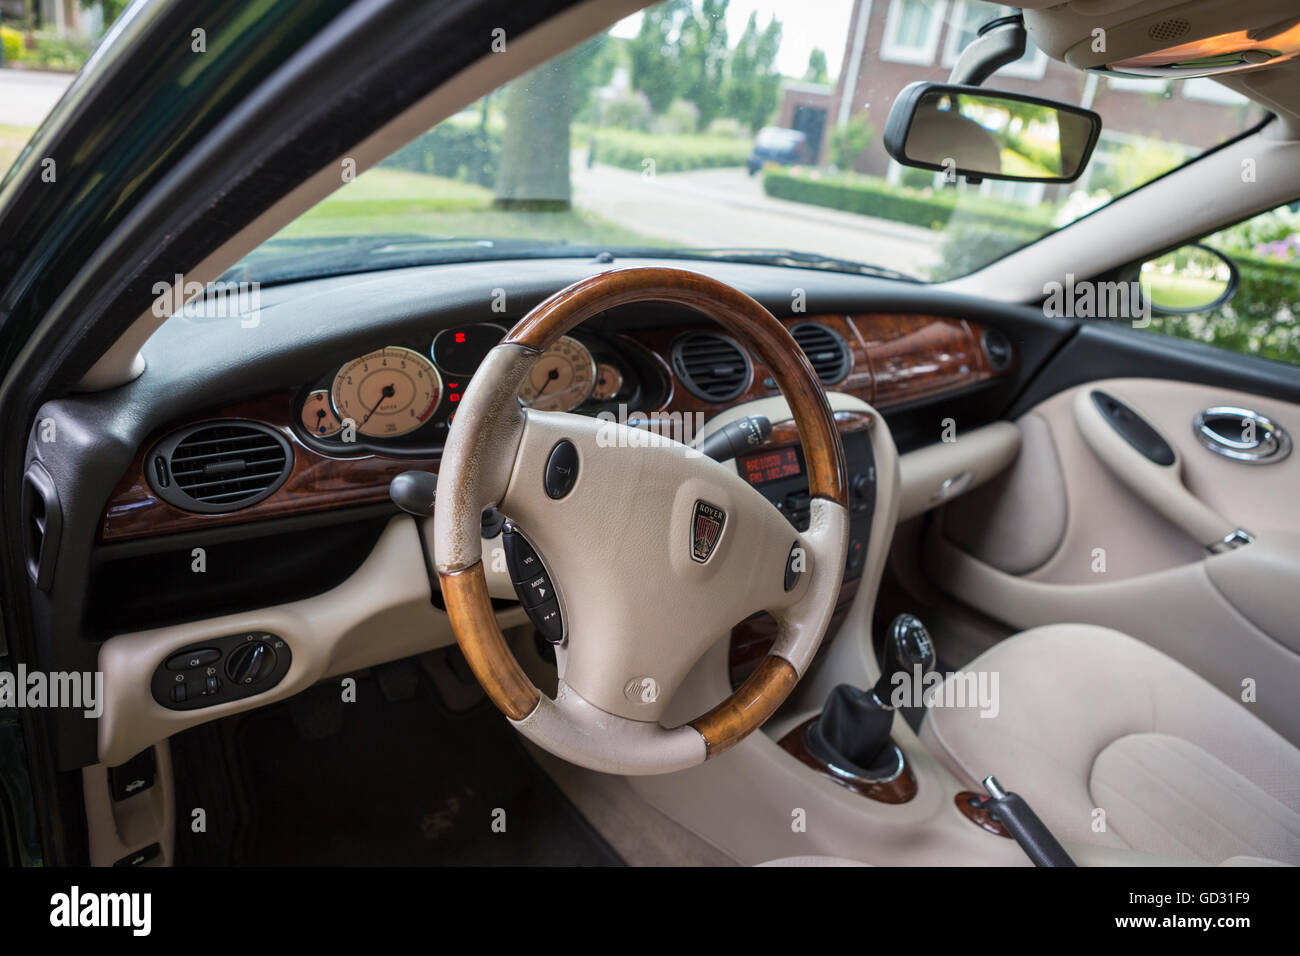 Rover 75 car interior with a walnut dashboard, color green